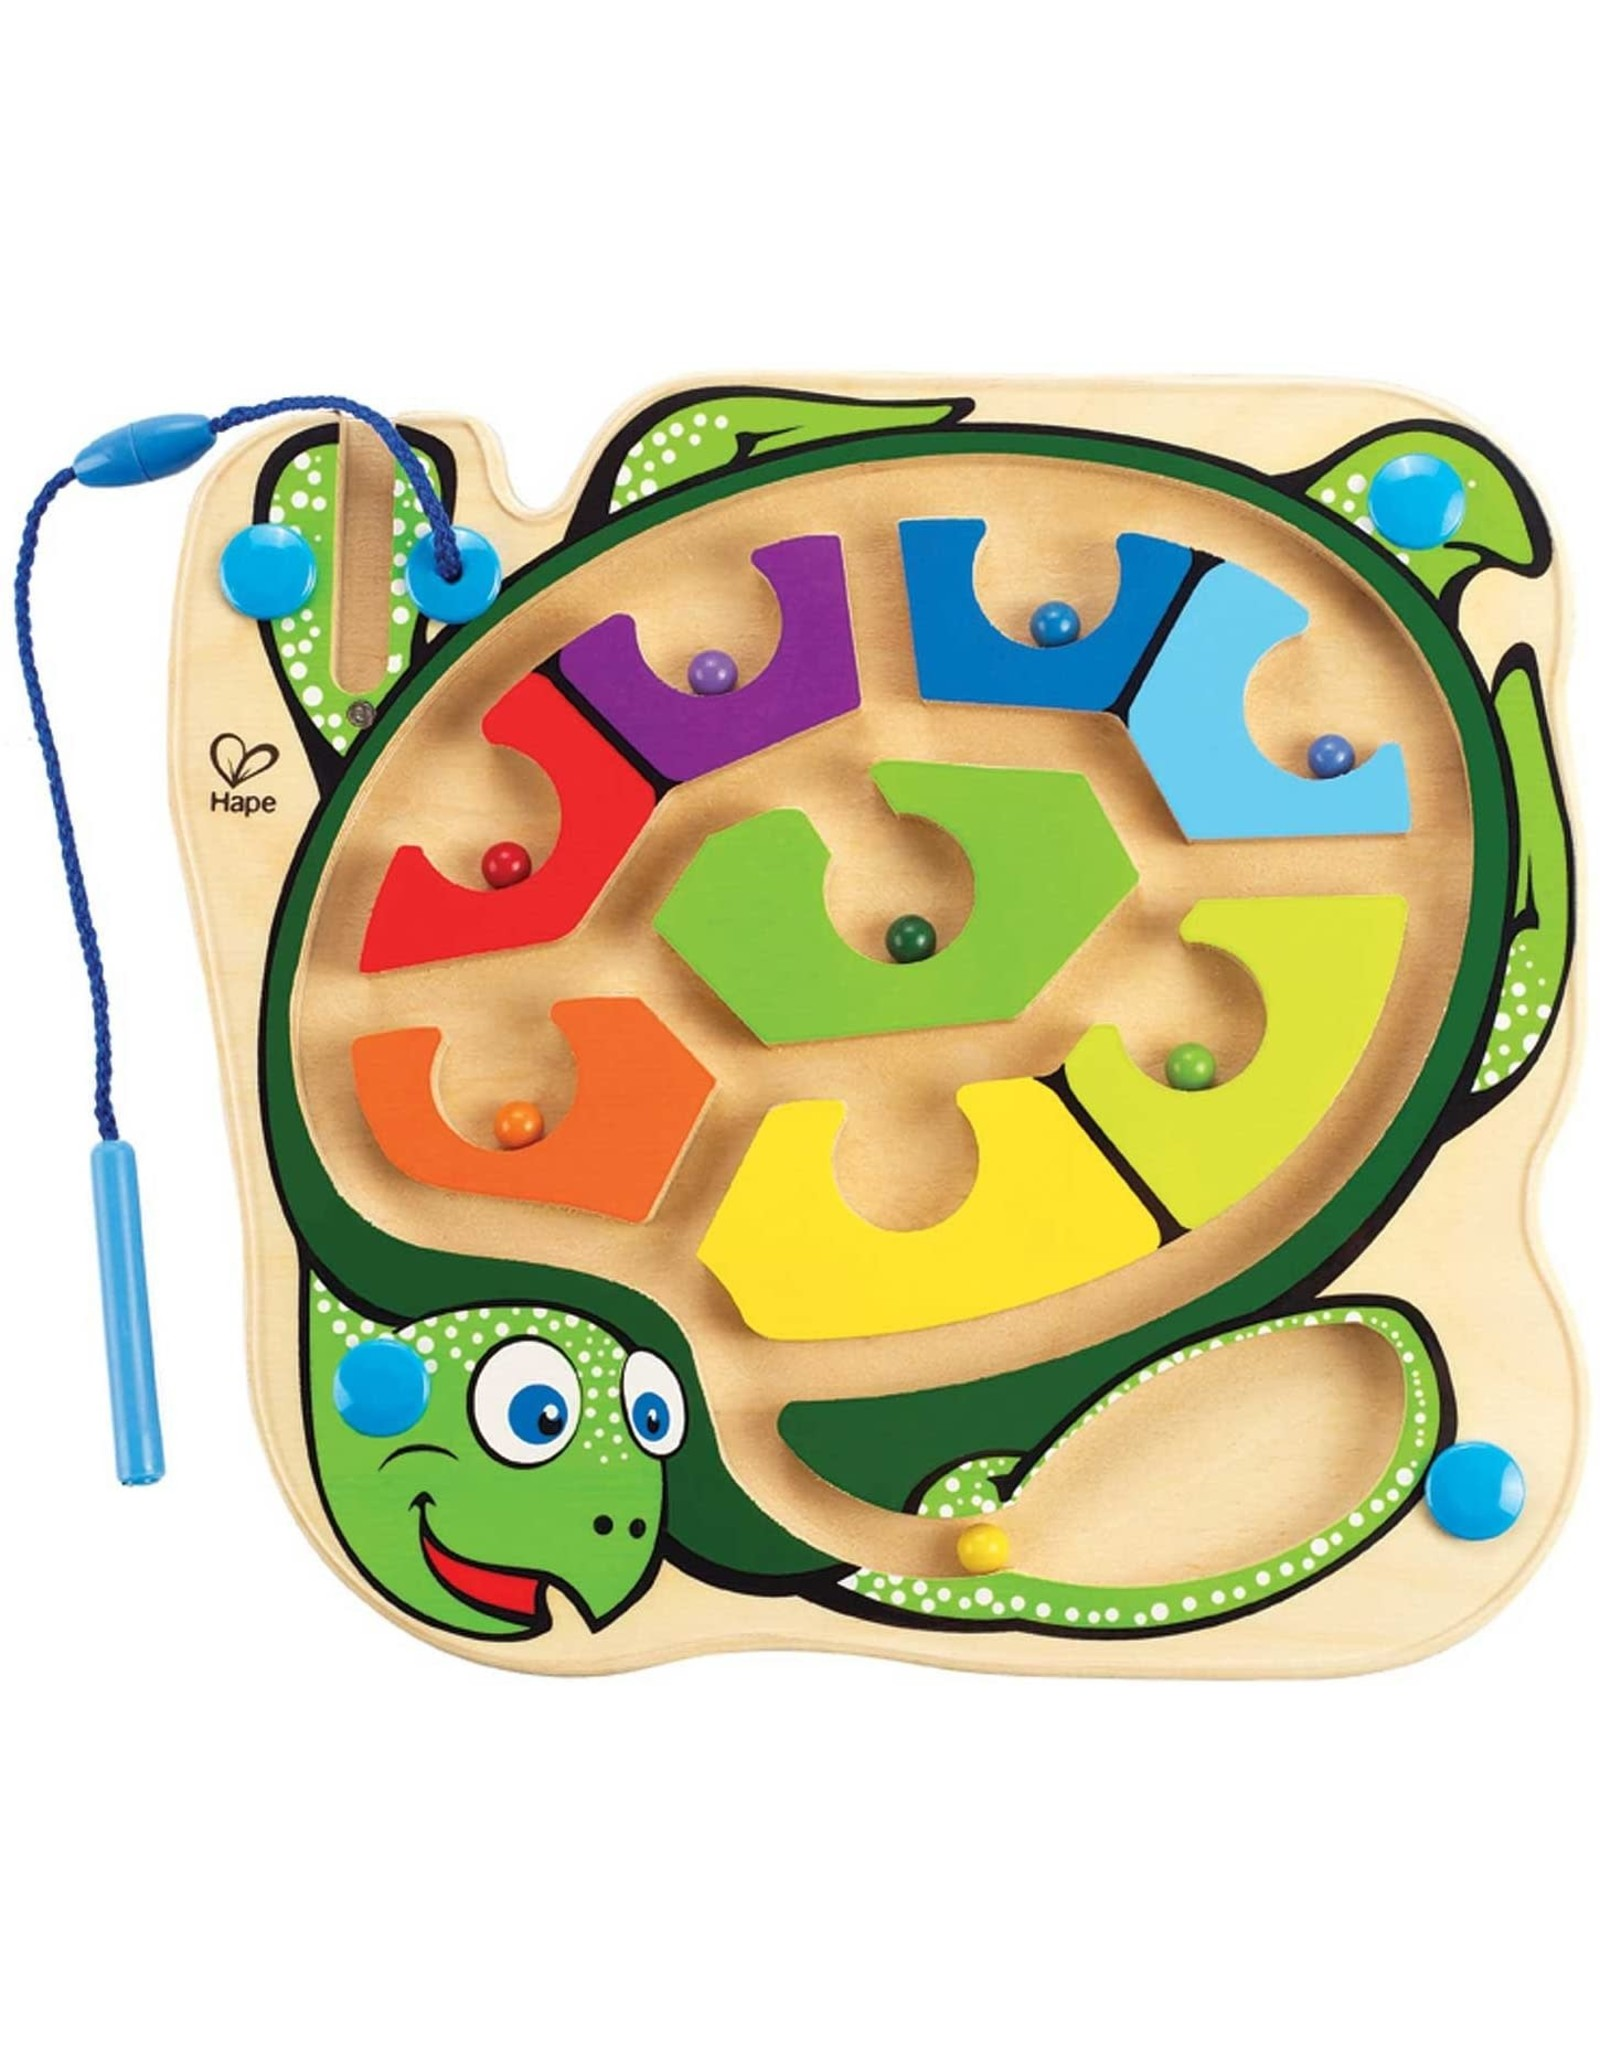 Hape Hape Colorback Sea Turtle